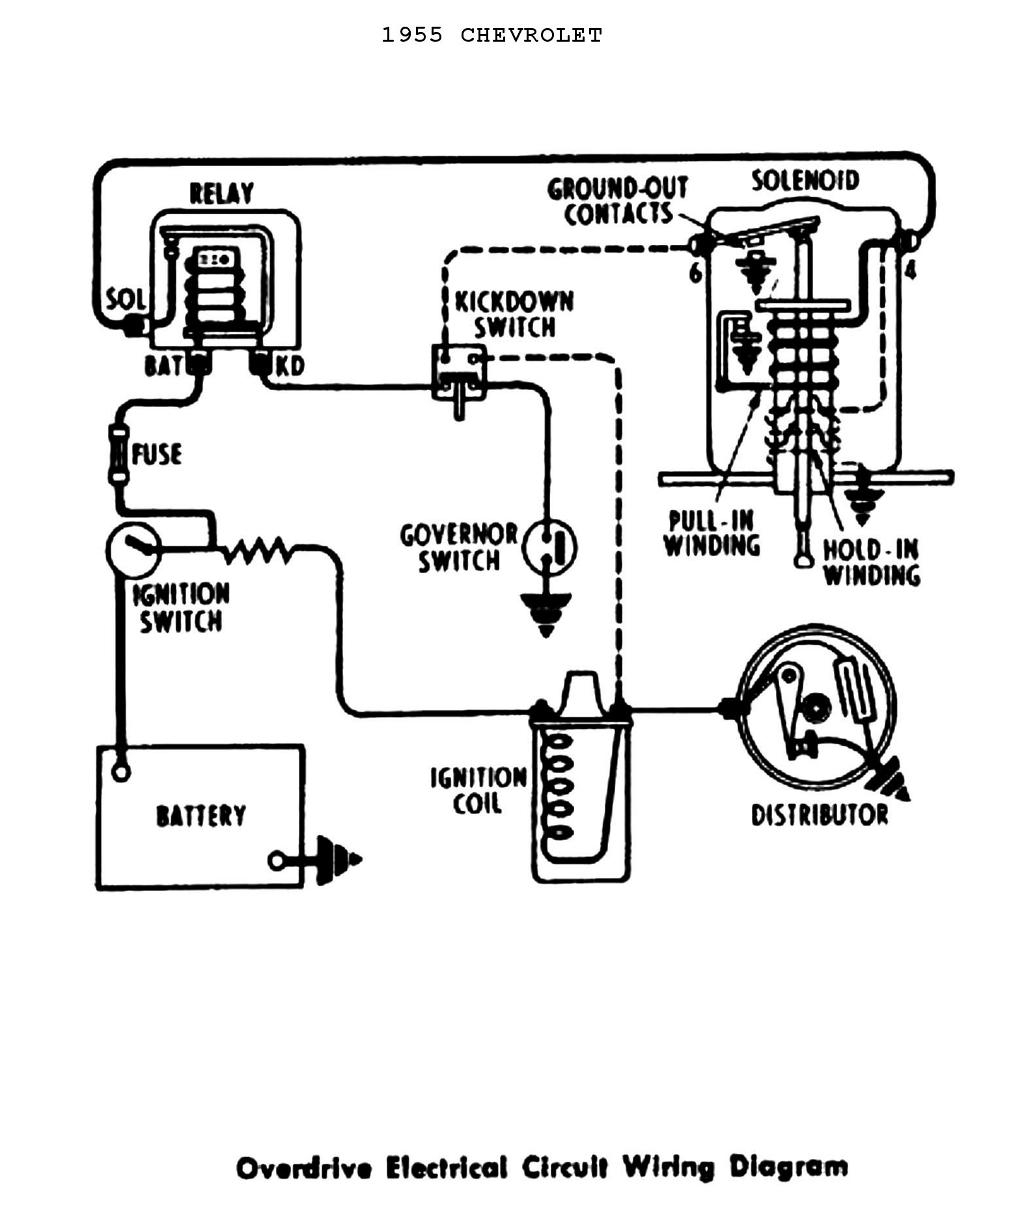 1999 2002 silverado door wiring diagram